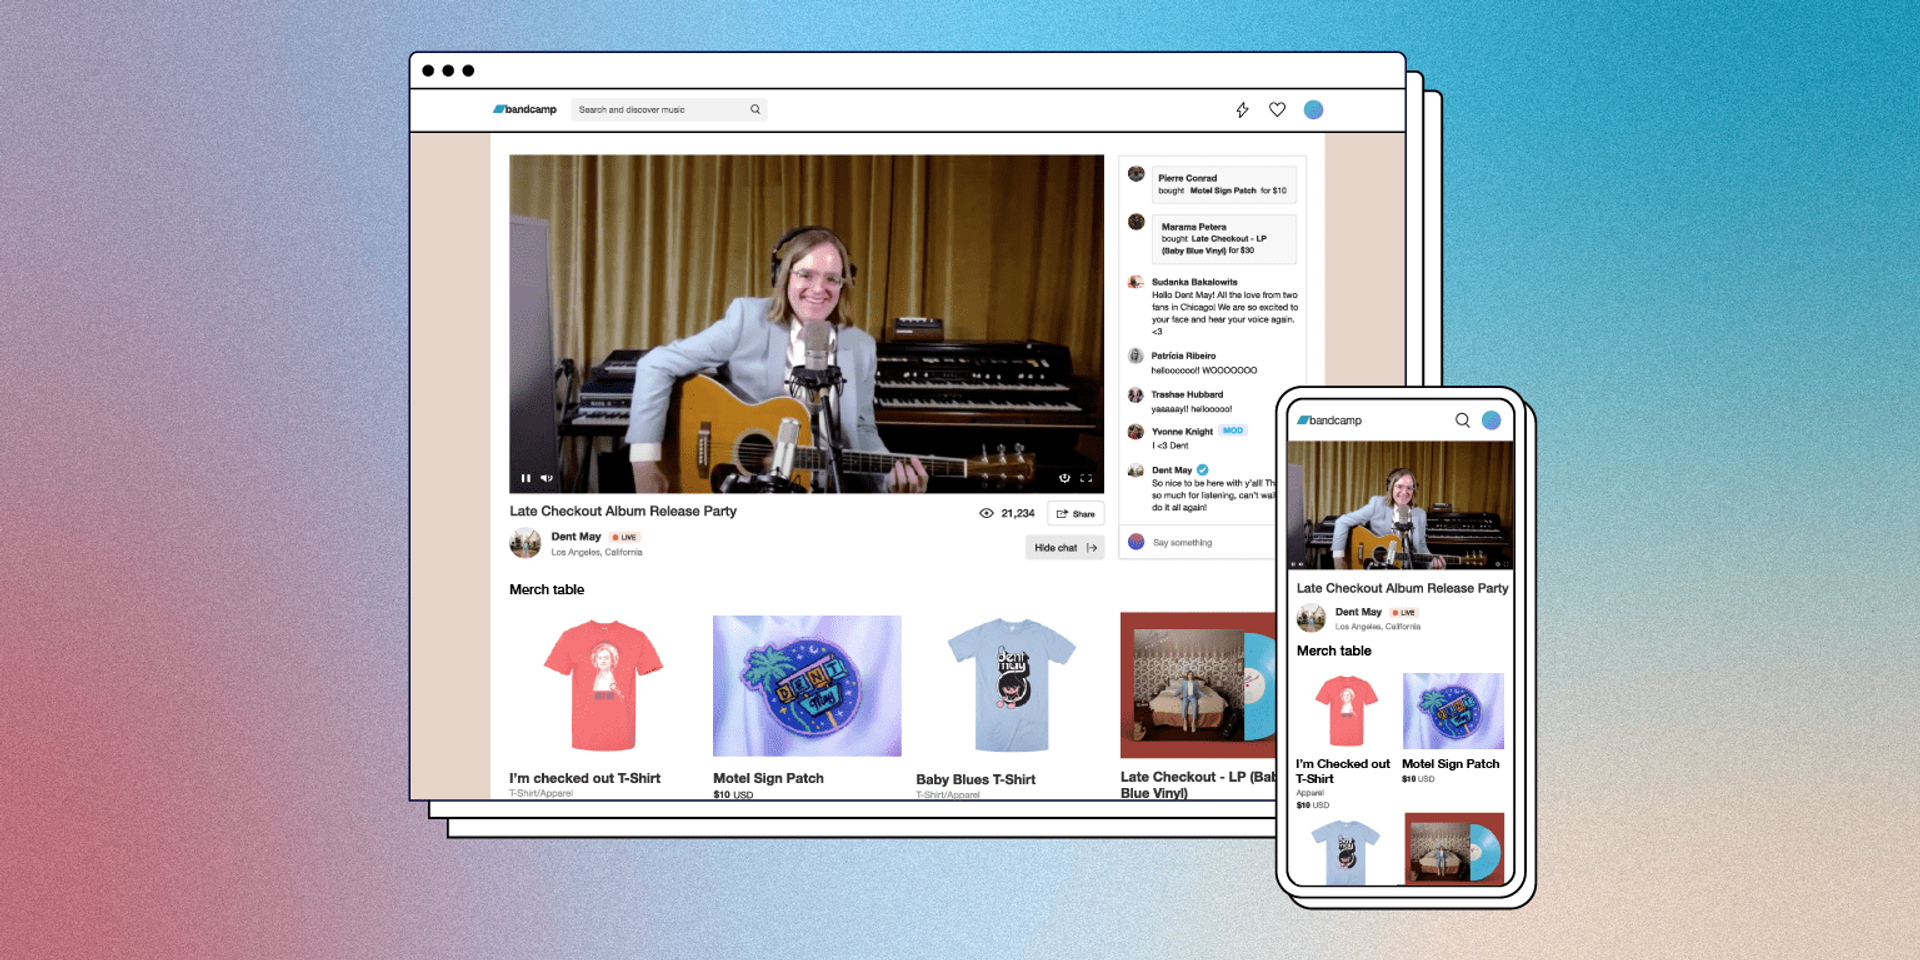 Bandcamp launches new paid livestream service 'Bandcamp Live'